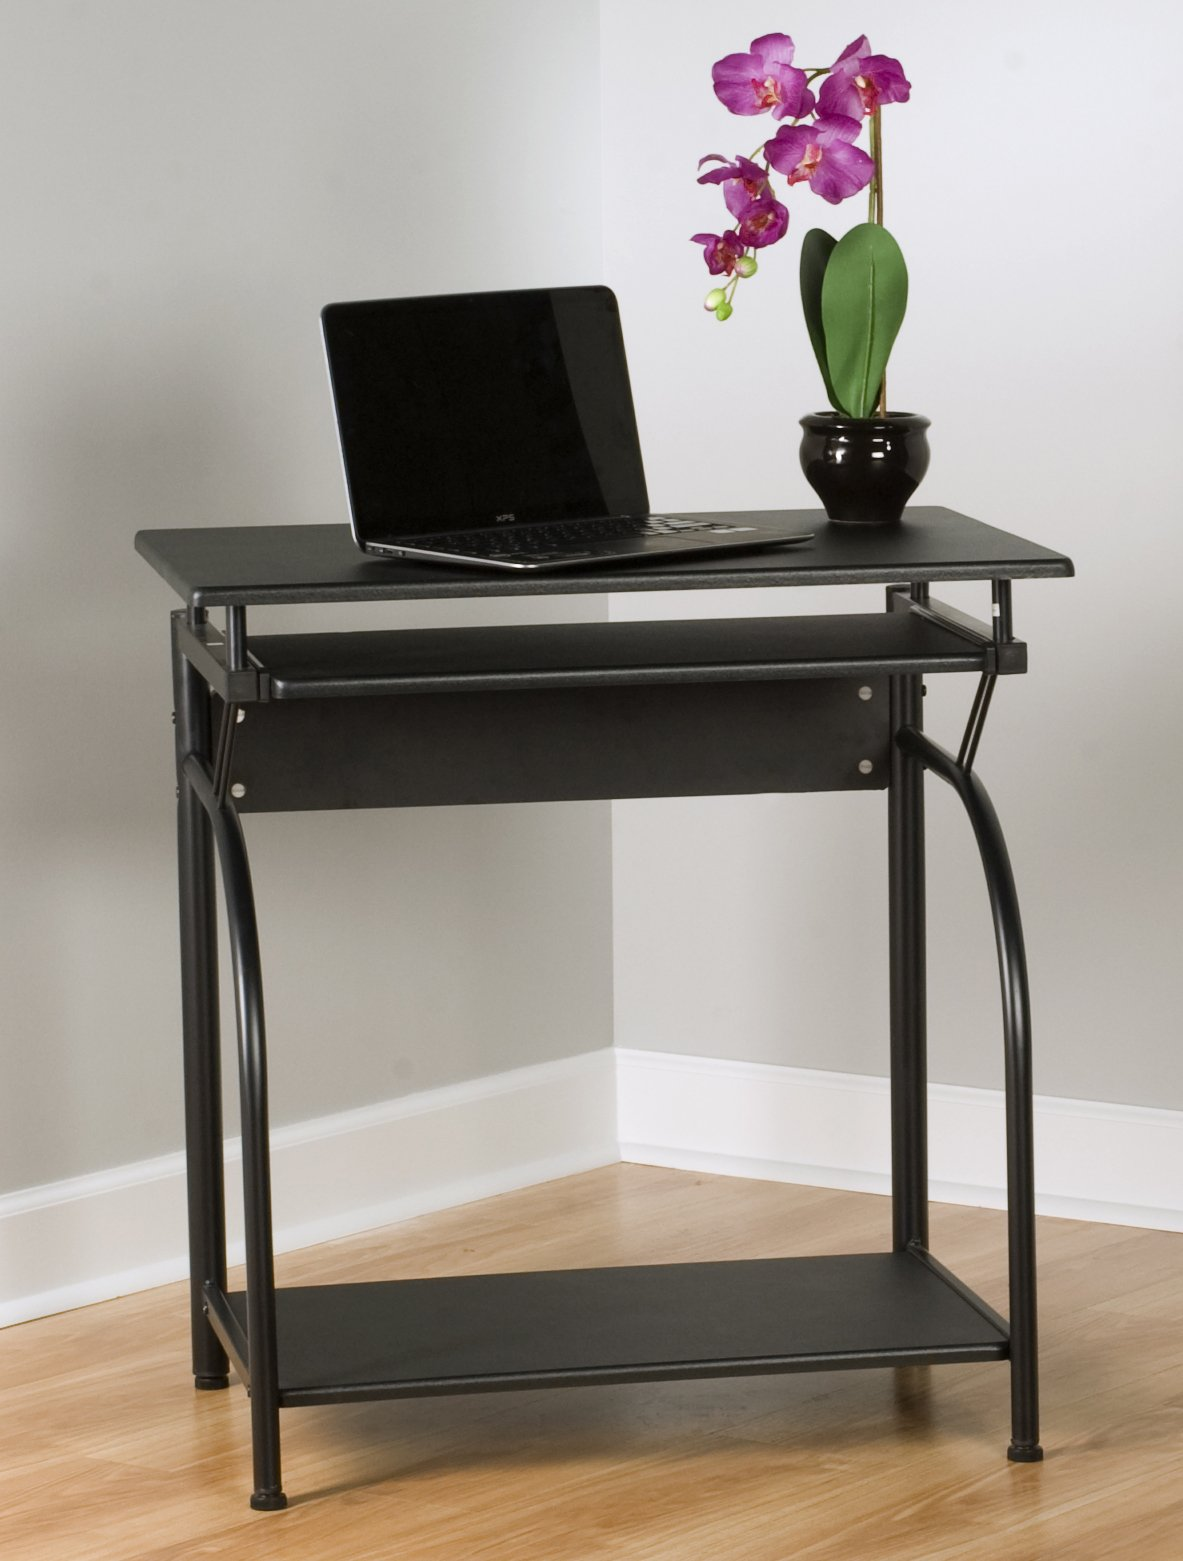 computer desk study table w keyboard tray bottom shelf. Black Bedroom Furniture Sets. Home Design Ideas